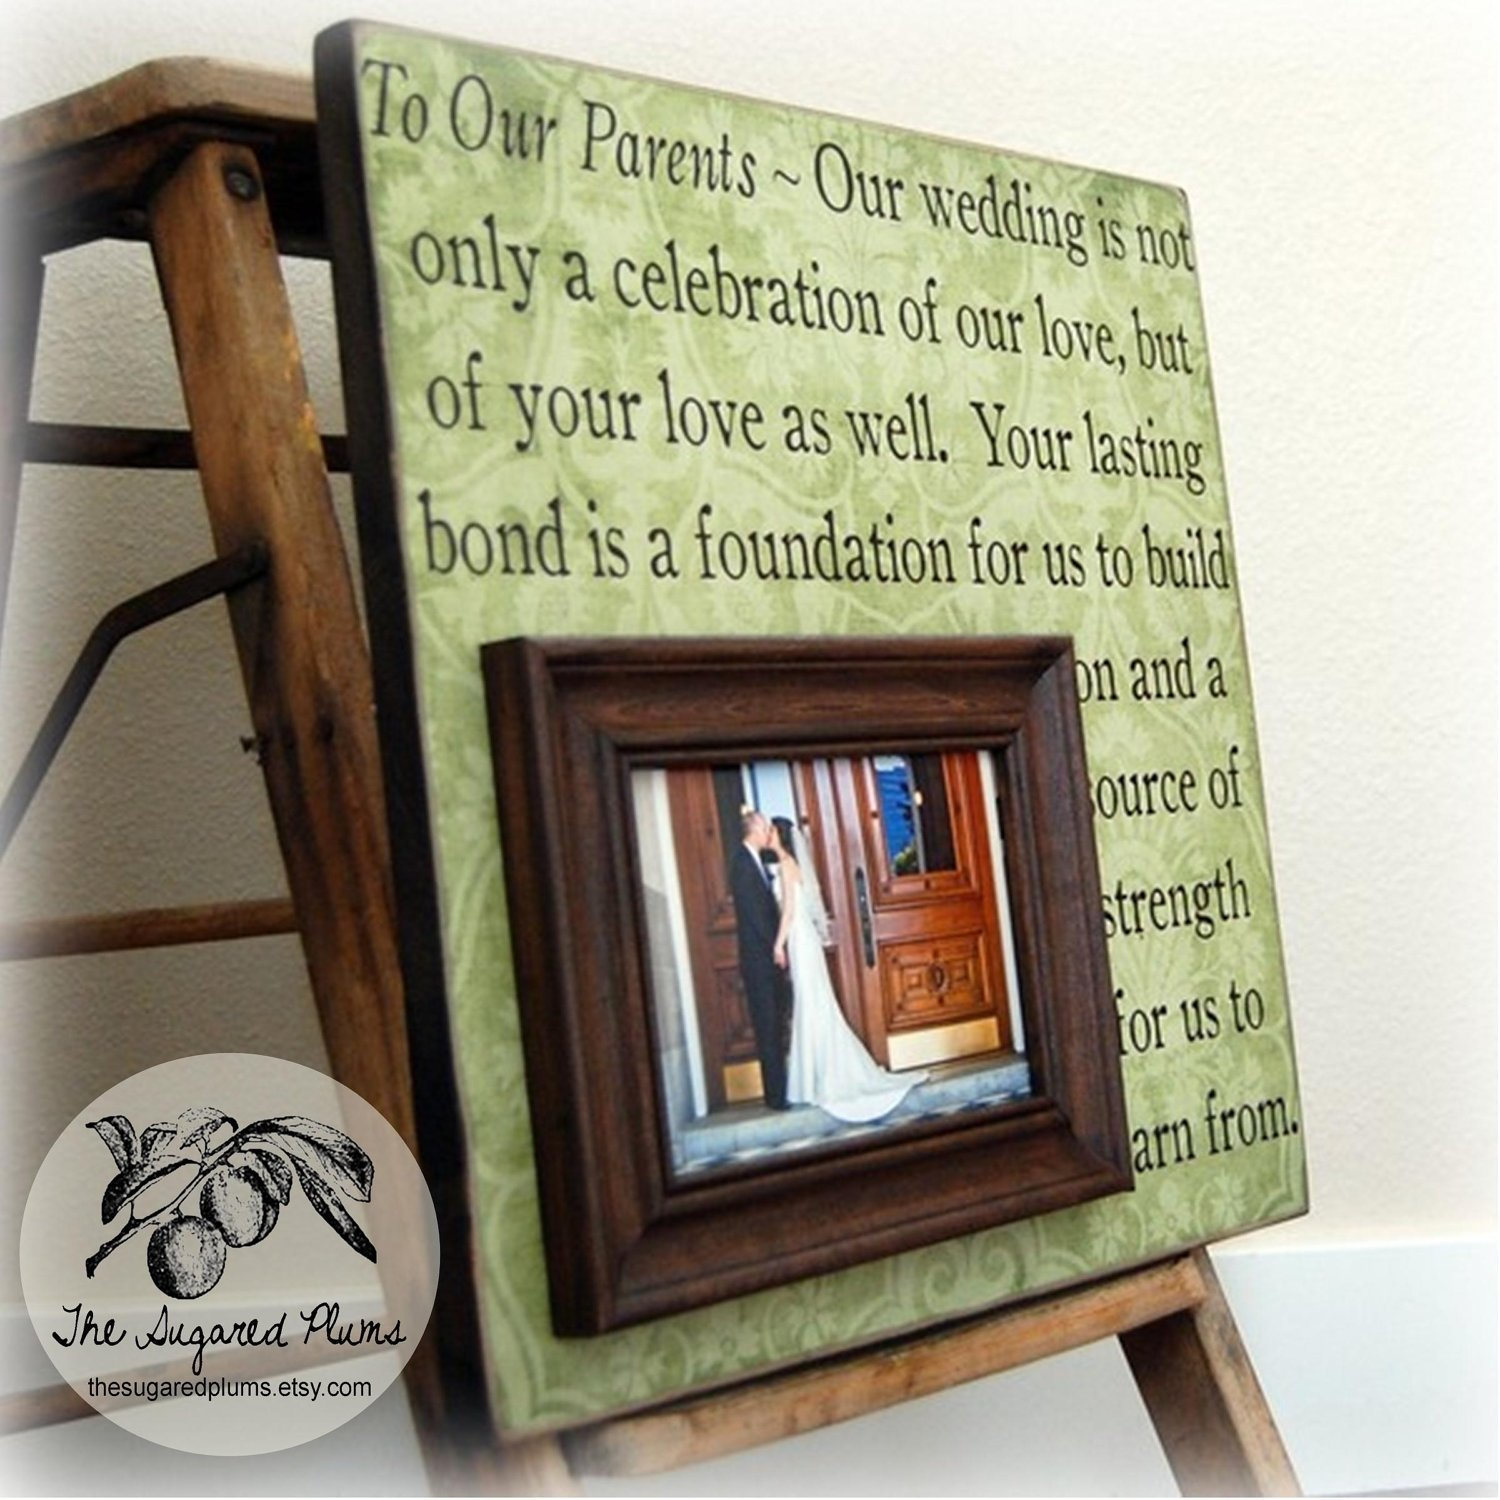 10 Nice 30Th Anniversary Gift Ideas For Parents rare th wedding anniversary gifts for parents pictures of photo